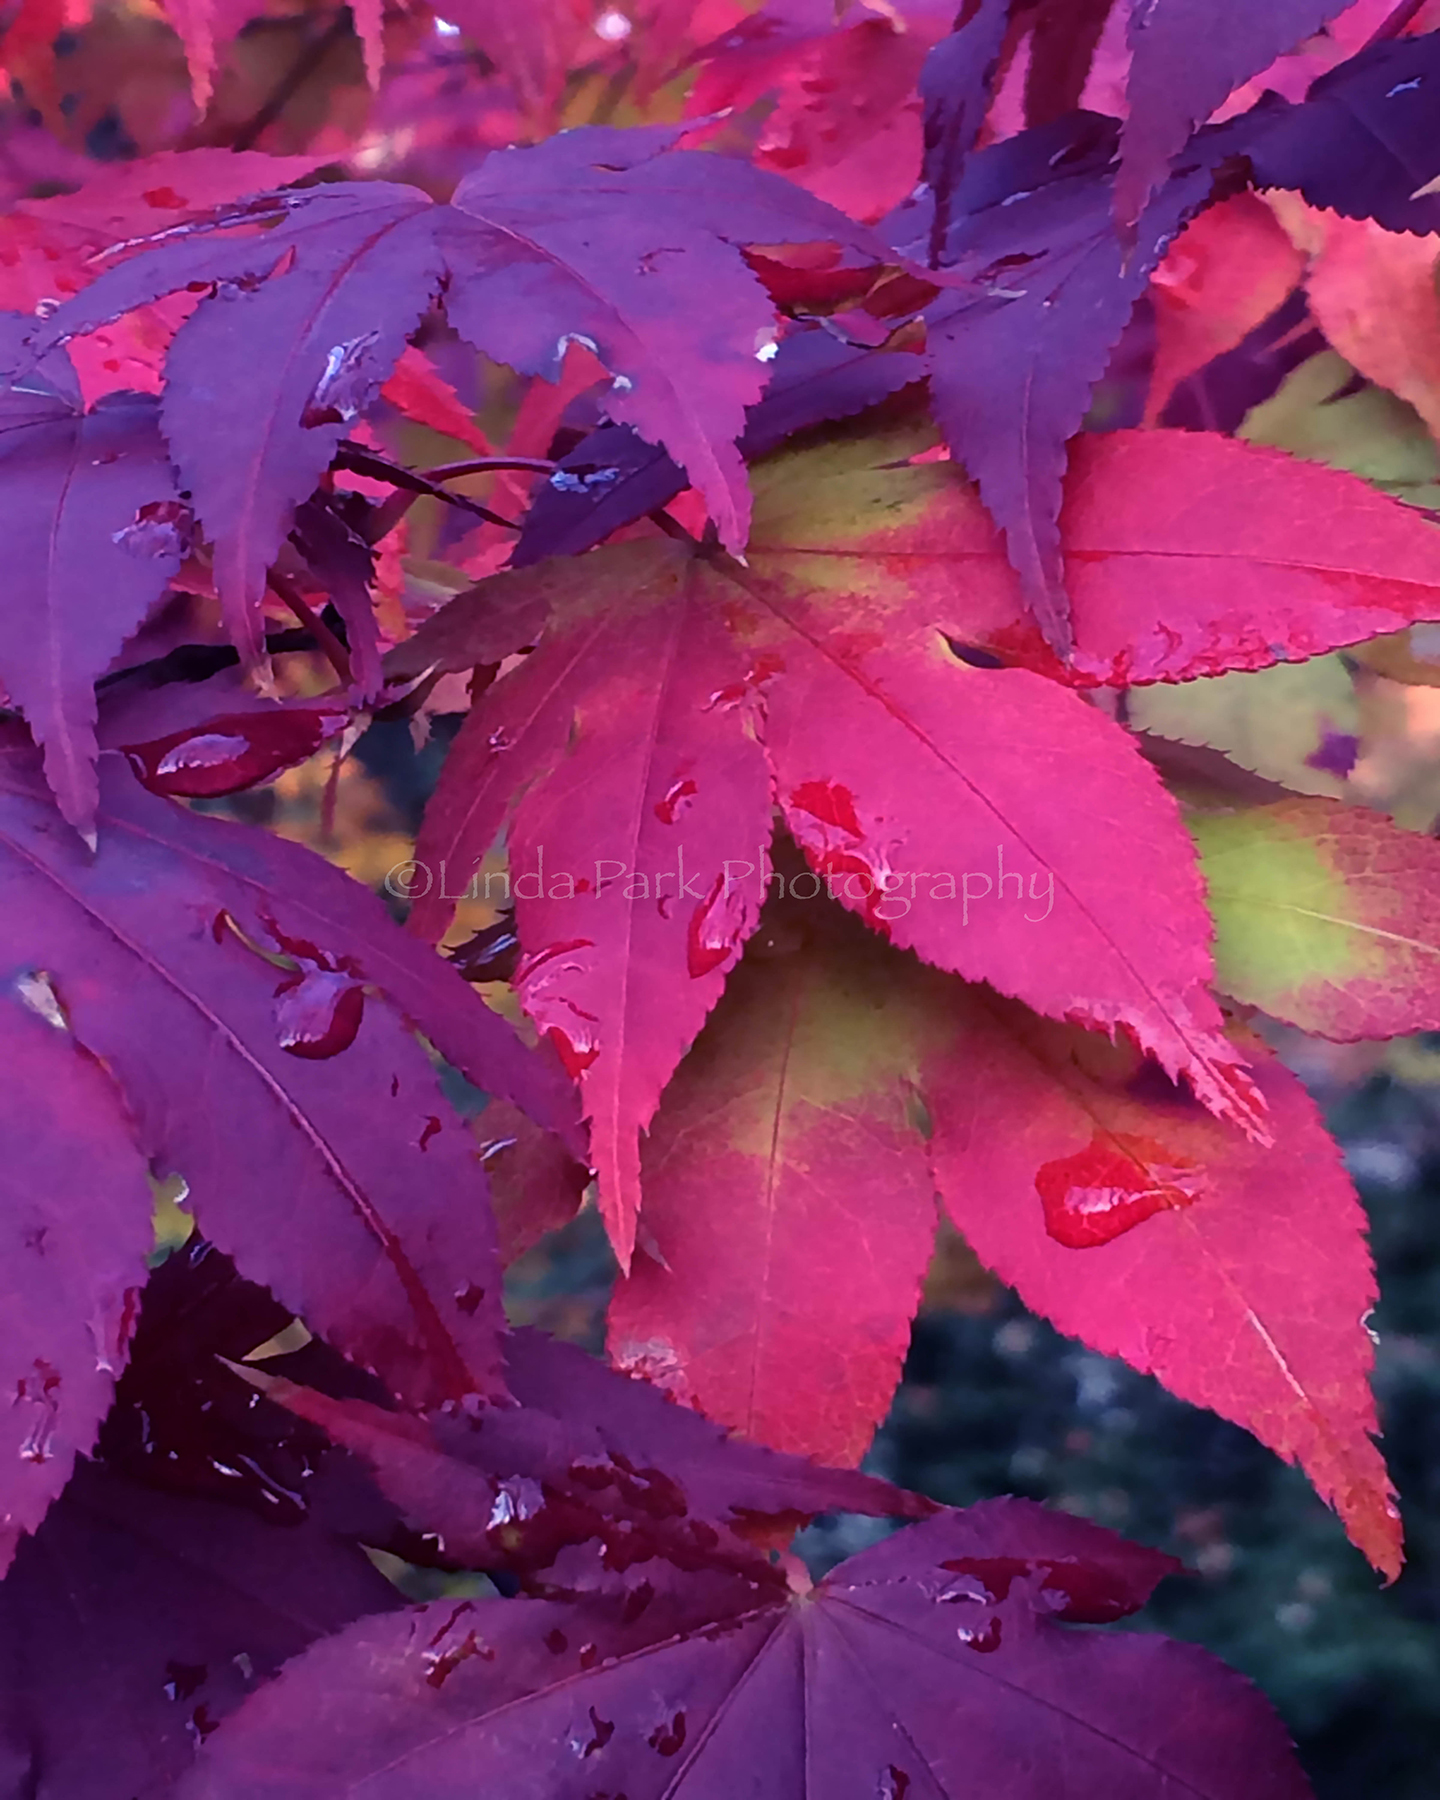 Pink and Purple Fall Leaves Photograph - Linda Park Photography